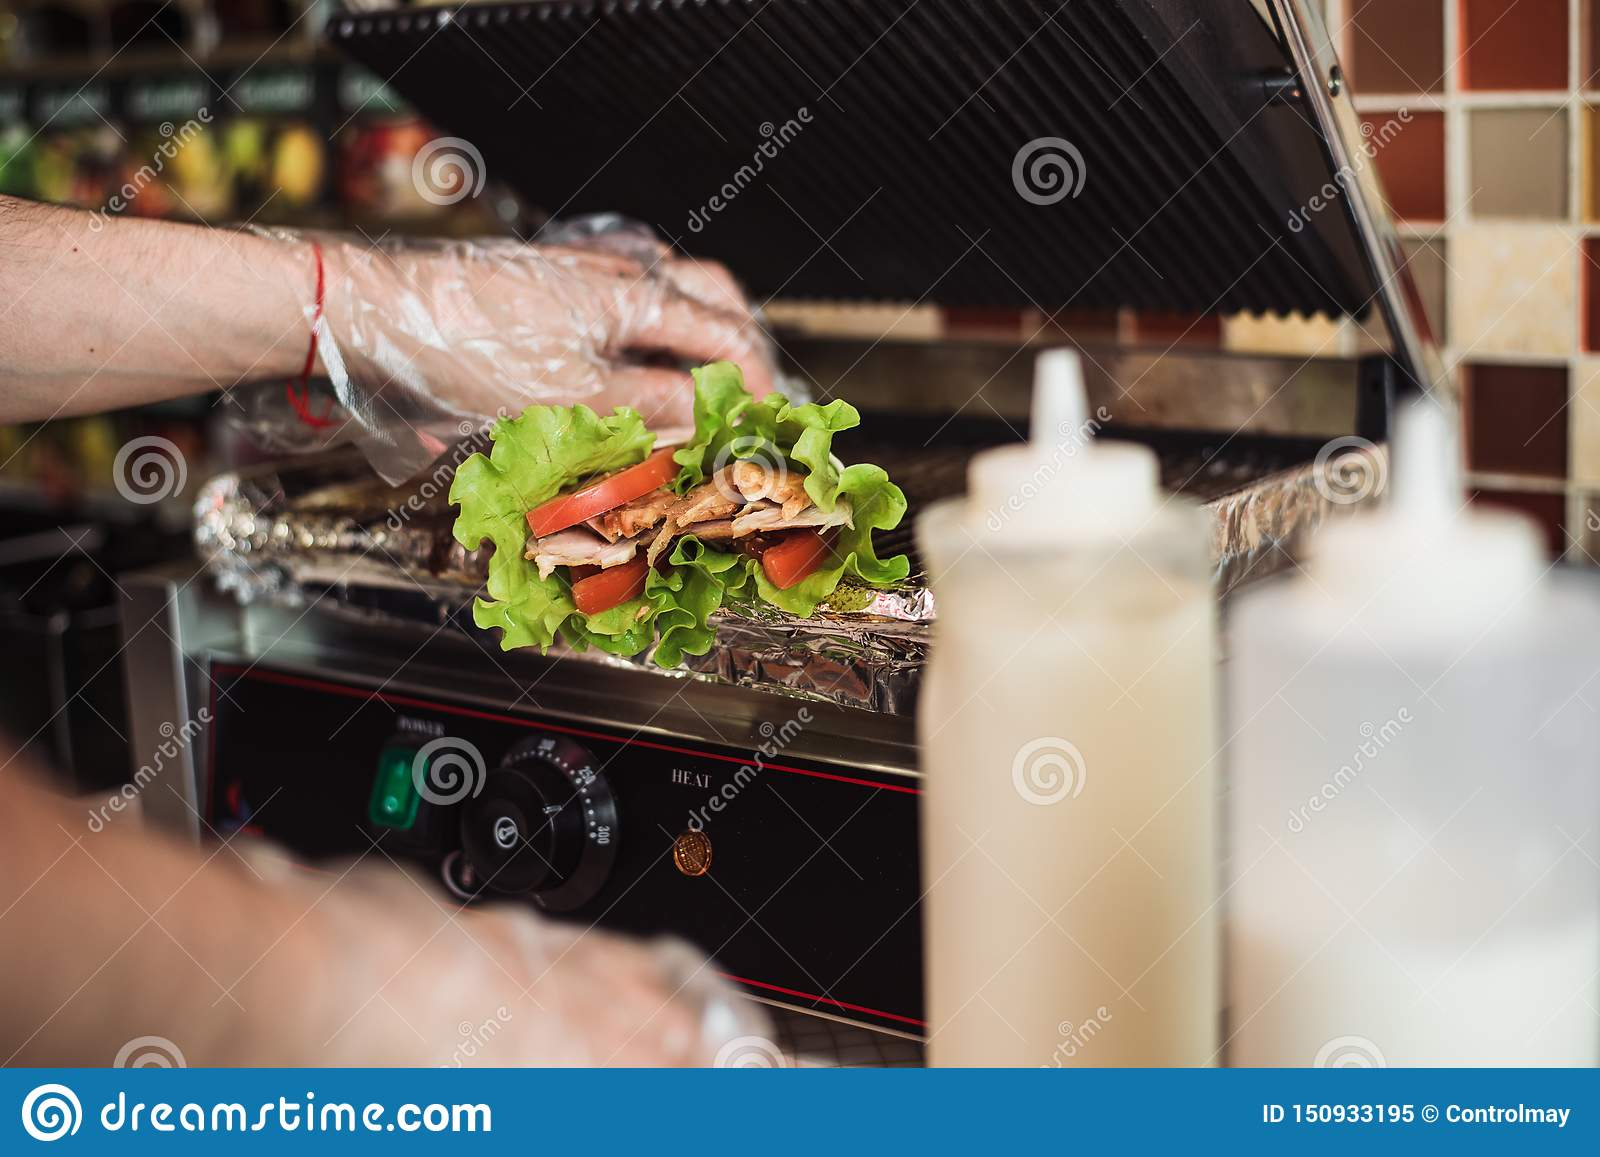 Shawarma doner baked in an electric oven in a fast food restaurant